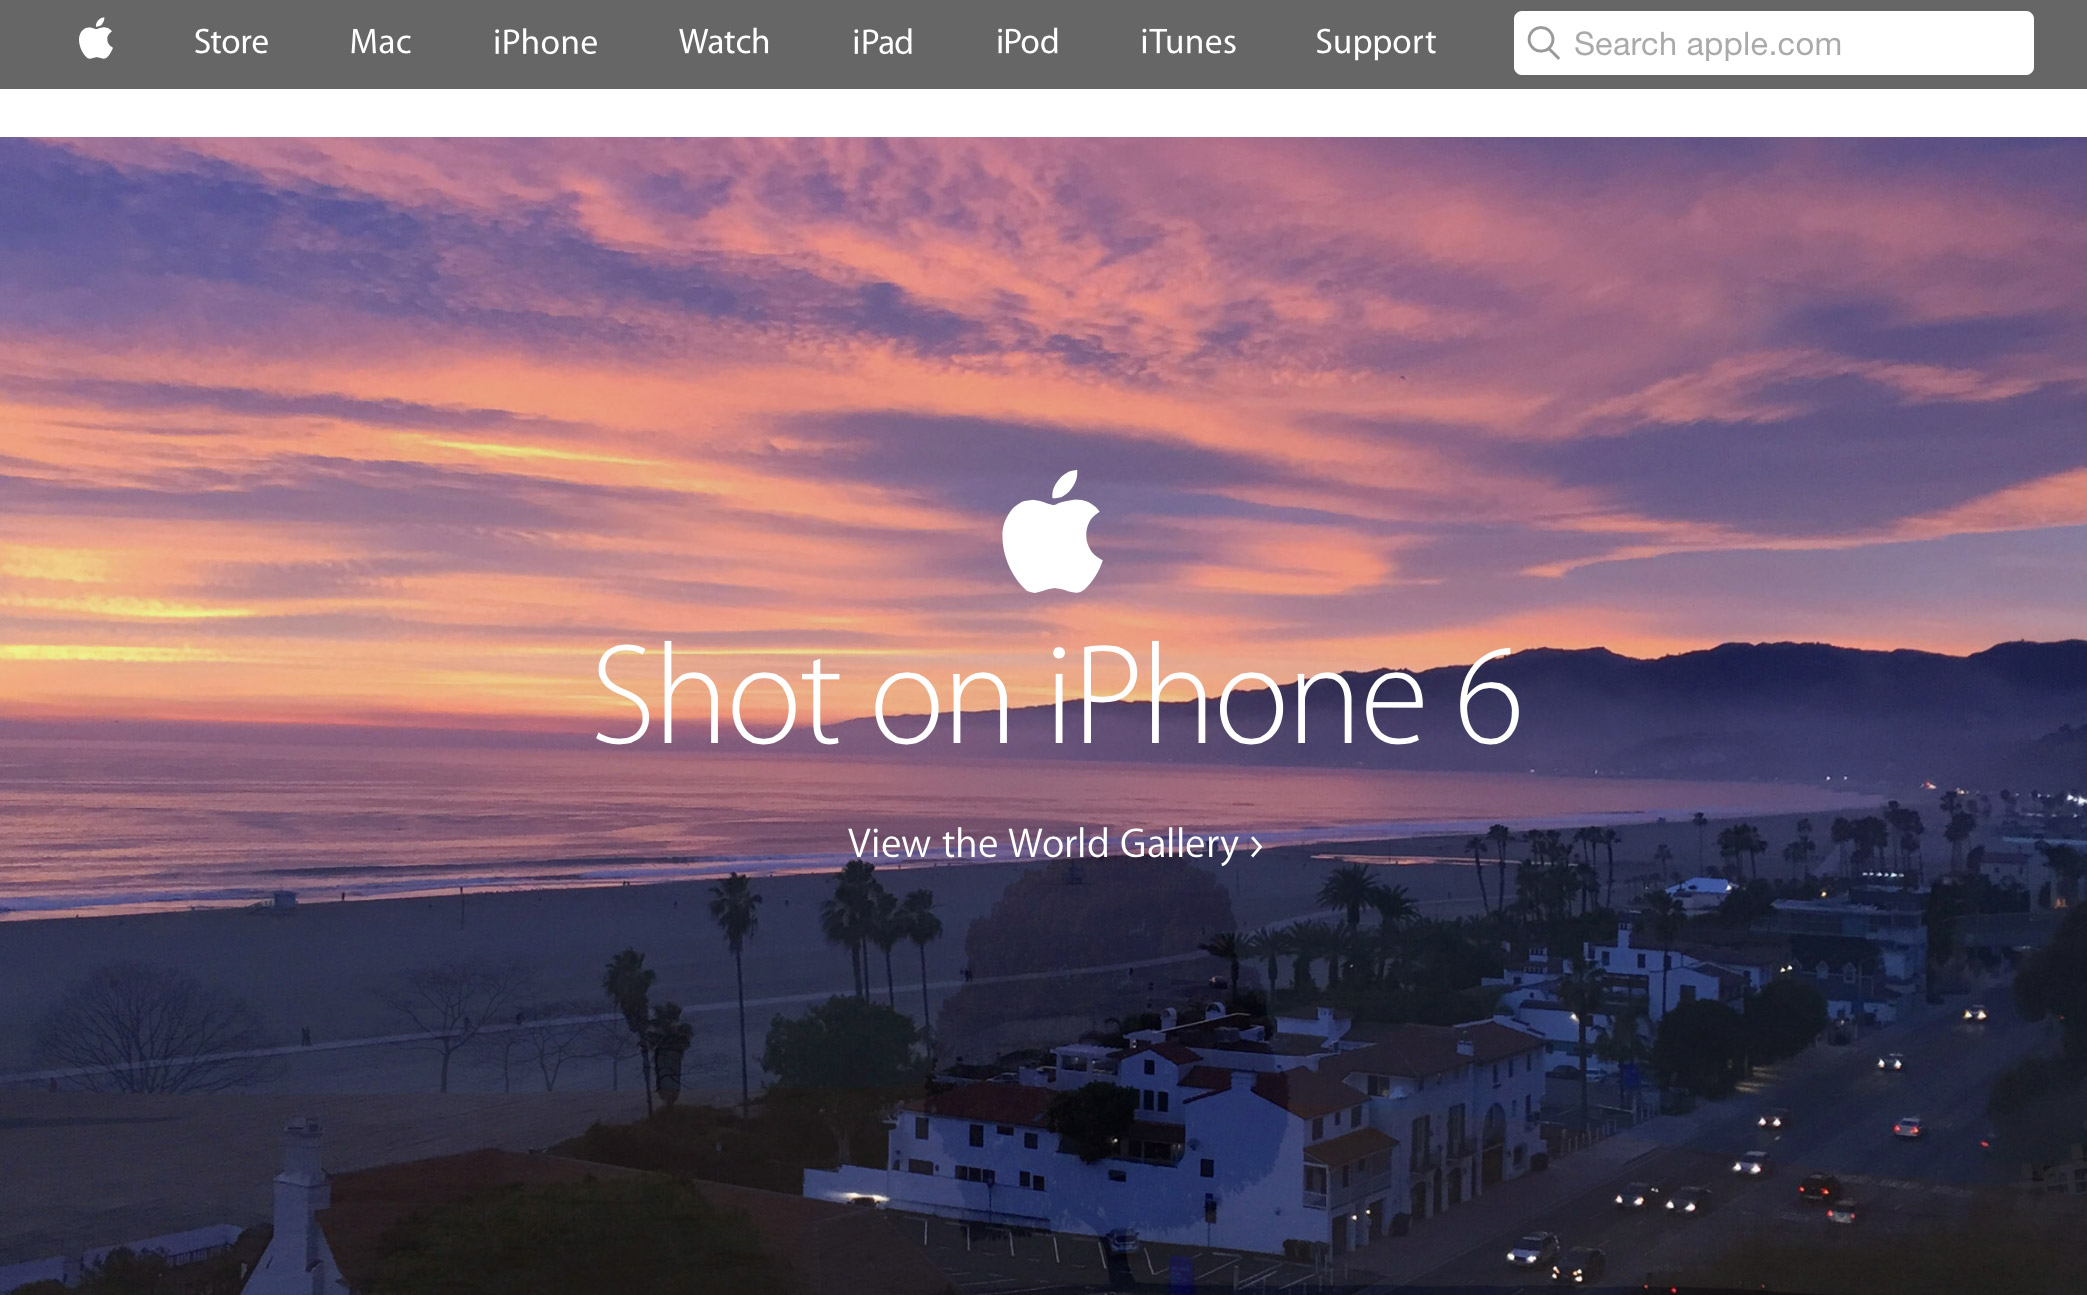 Apple.com with Search